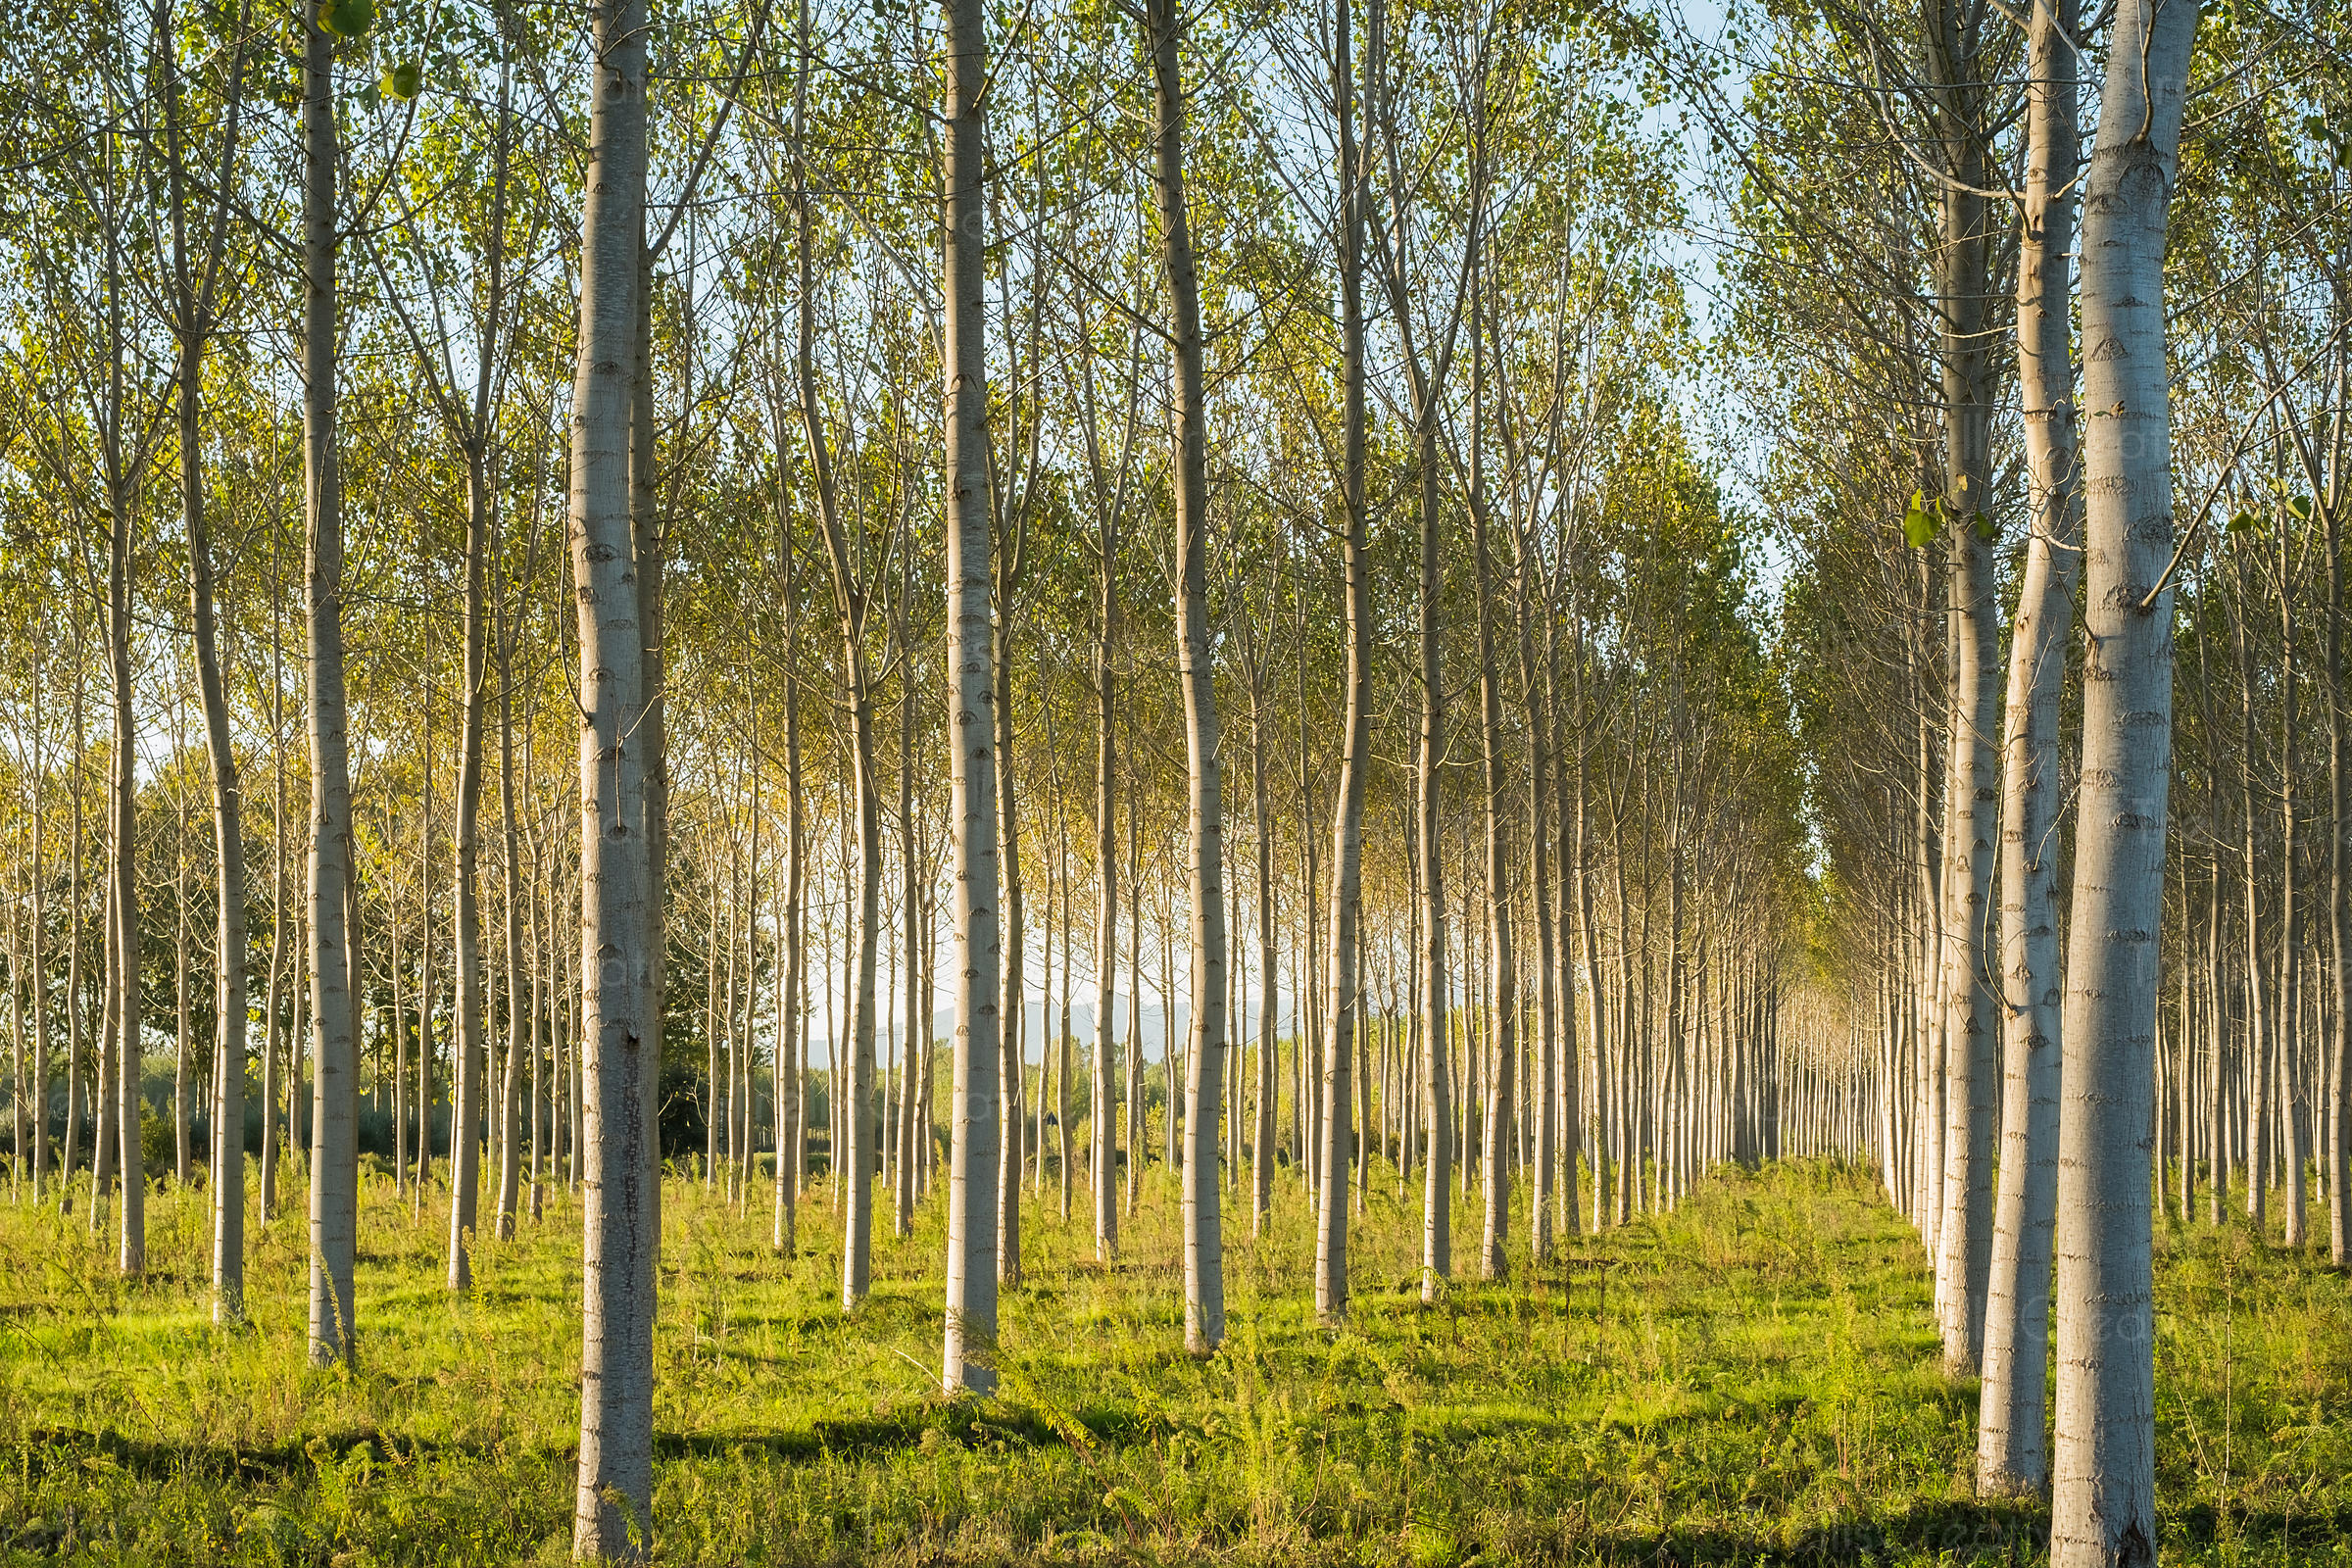 Stand of birch trees in Piedmont, Italy